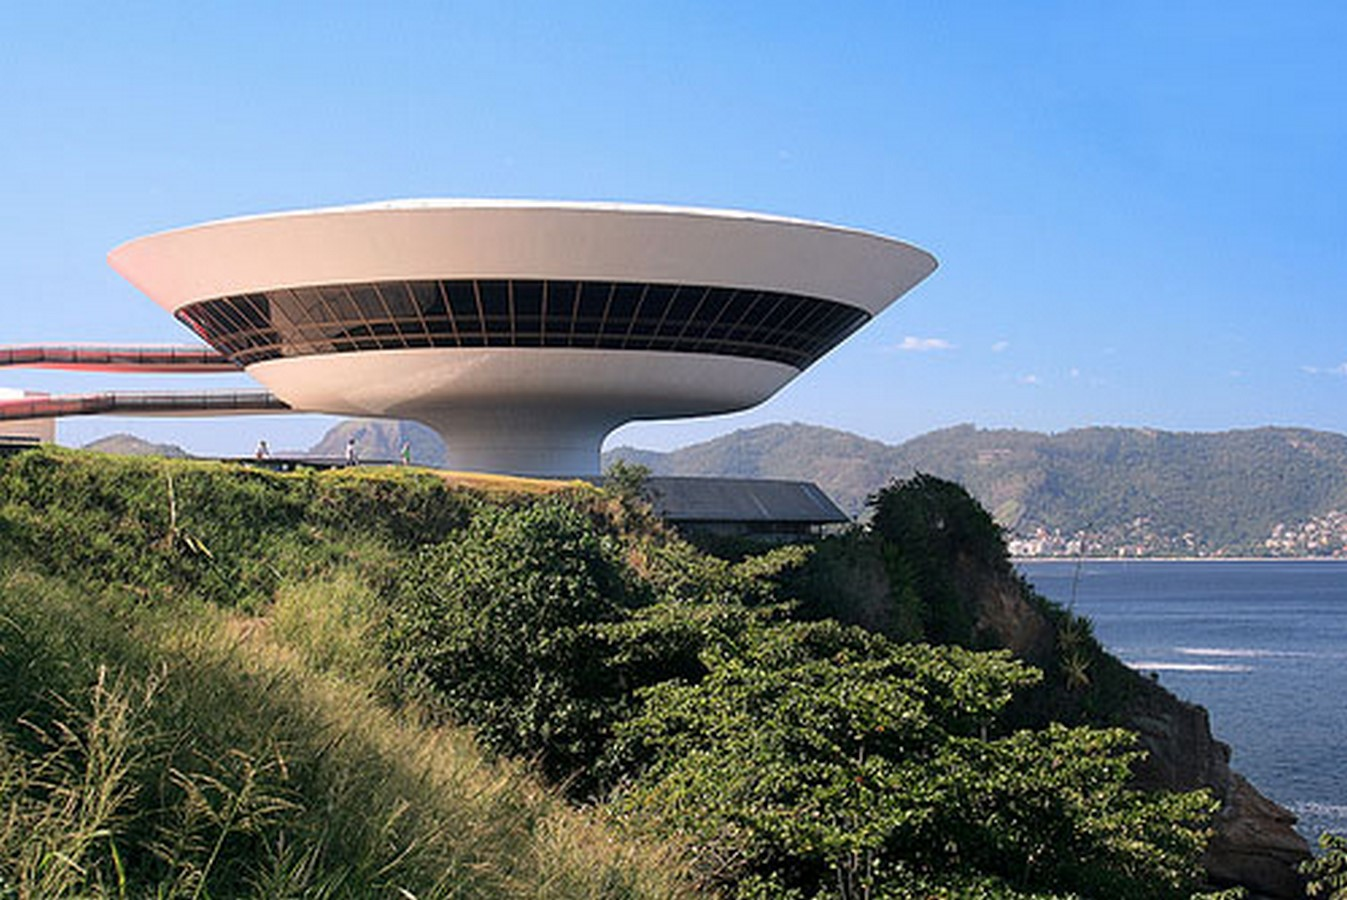 Niterói Contemporary Art Museum by Oscar Niemeyer: Iconic Saucer-Shaped Structure Sheet4